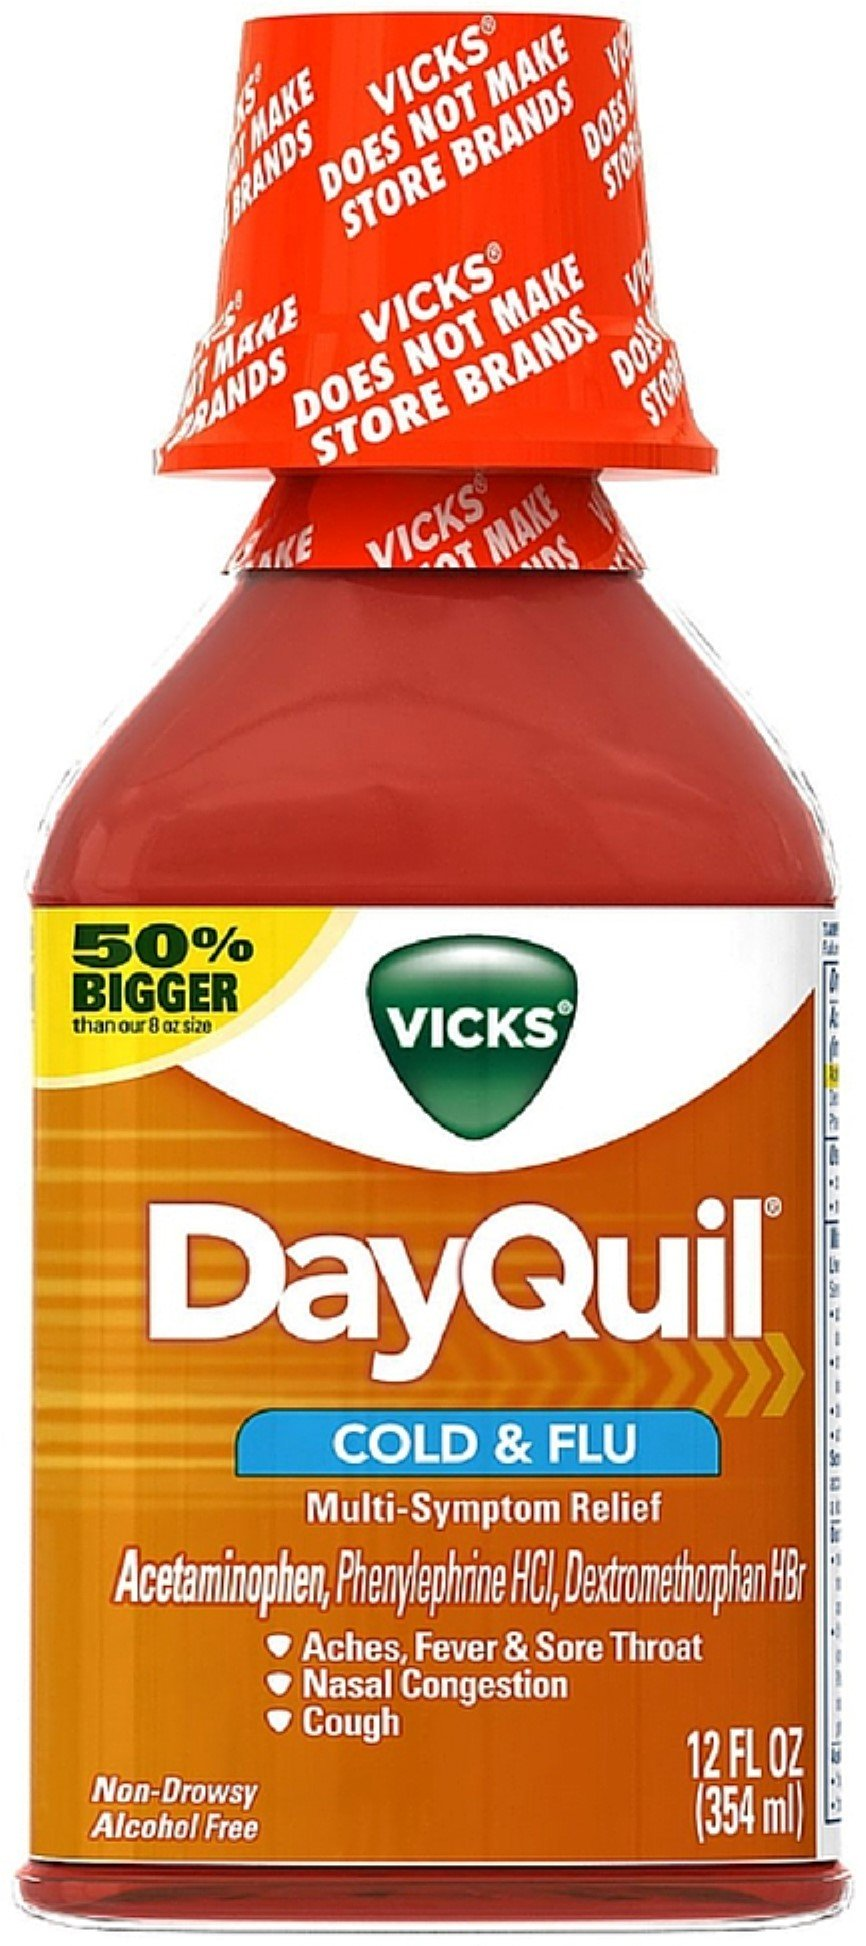 Vicks Dayquil Cold & Flu Multi-Symptom Relief Liquid 12 oz (Pack of 10)